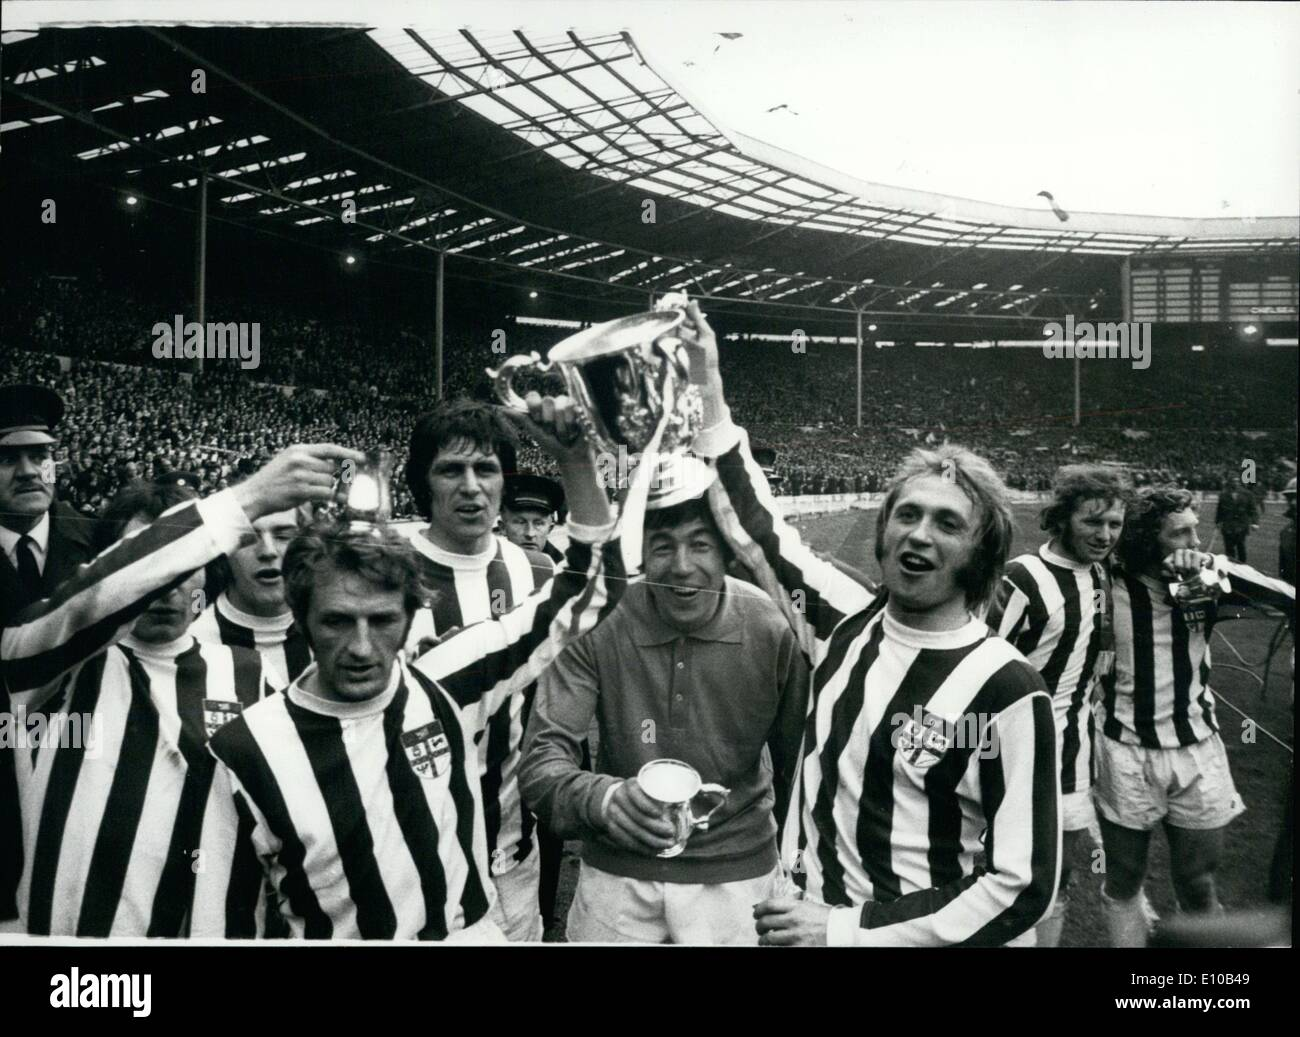 Mar. 03, 1972 - Stoke City Beat Chelsea In League Cup Final At Wembley By 2-1: Photo shows. Seen after the match as the stoke players hold up the league cup they are L-R George Eastham, who acored the winning goal, John Ritchie, Gordon Banks England and Stoke goal and Jimmy Greenhoff. - Stock Image